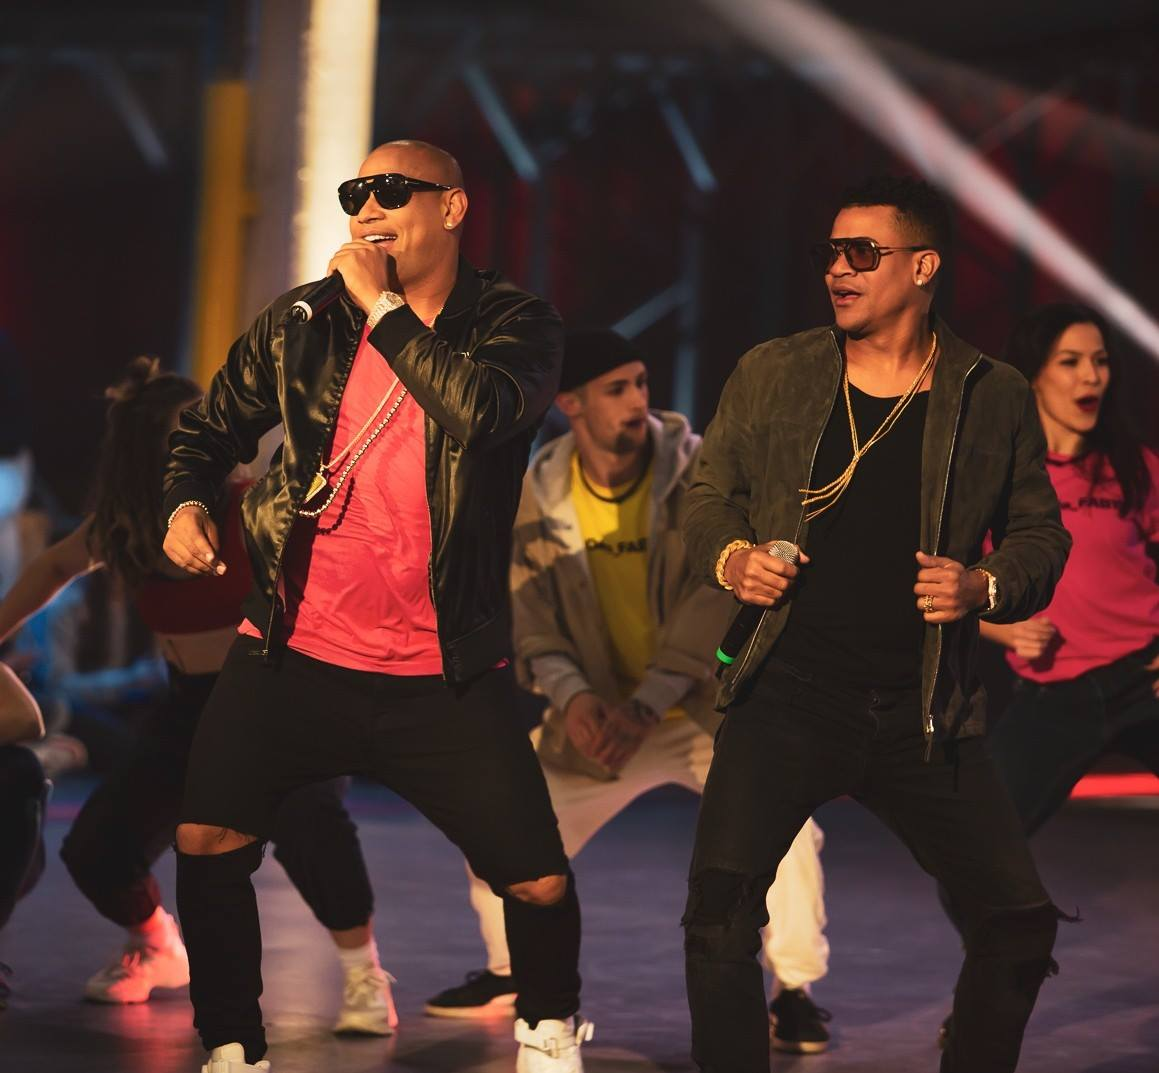 Really enjoyed this beautifully written piece by @rmbodenheimer on #Reggaeton in #Cuba and the marginalization of Black #music. @TheNorthStar   https://thenorthstar.com/articles/cuban-reggaeton-and-the-marginalization-of-black-music…